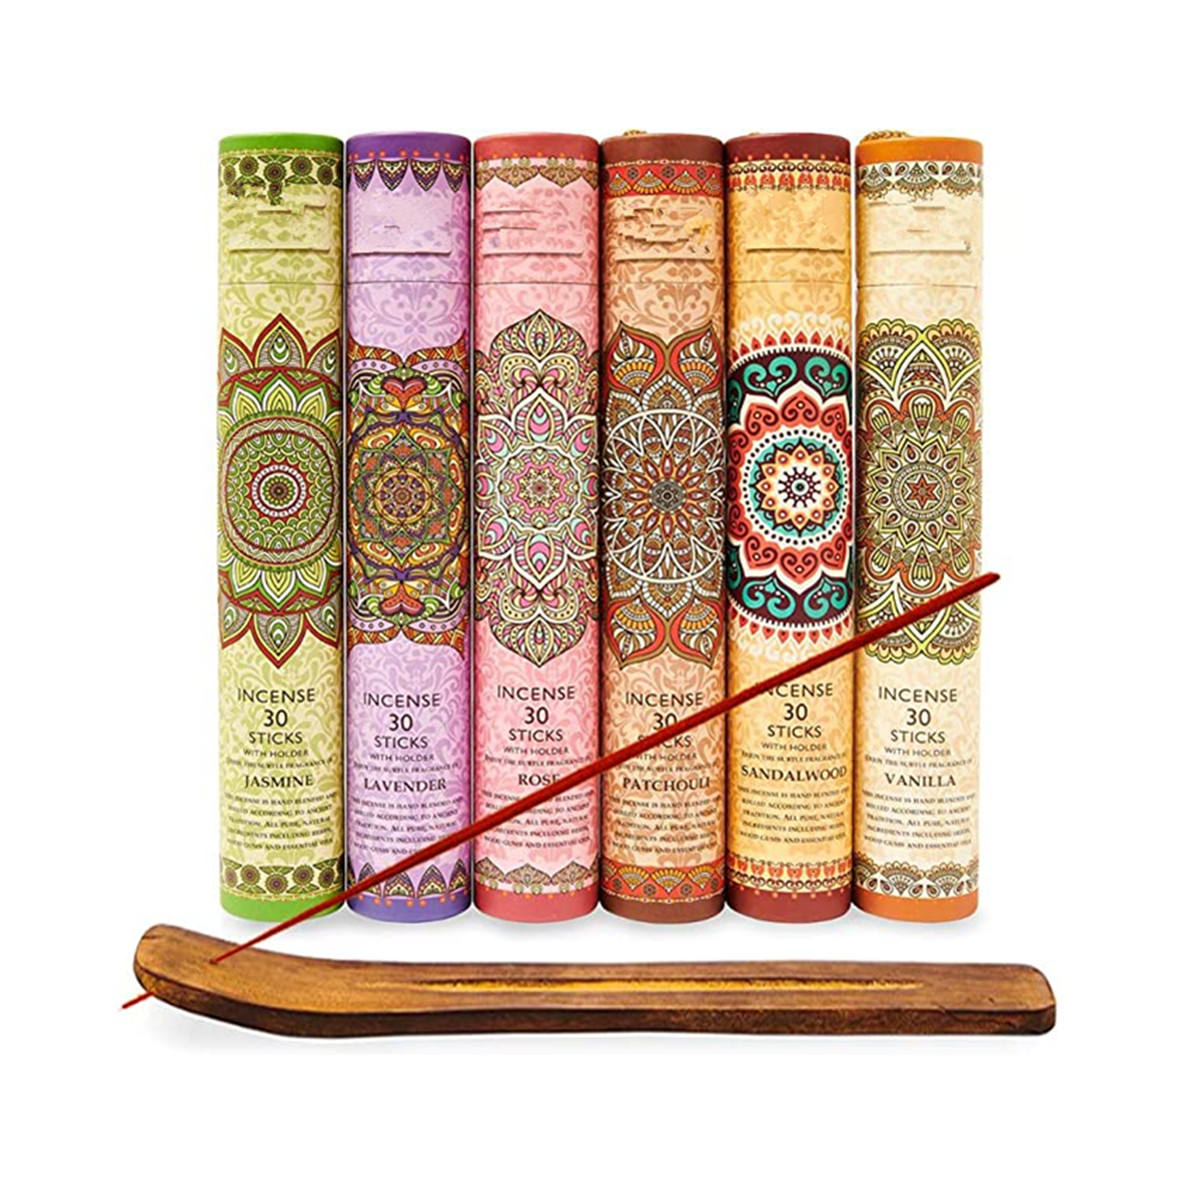 180pcs Bamboo Premium Incense Stick Lavender Sandalwood Jasmine Patchouli Rose Vanilla Includes a Holder and box